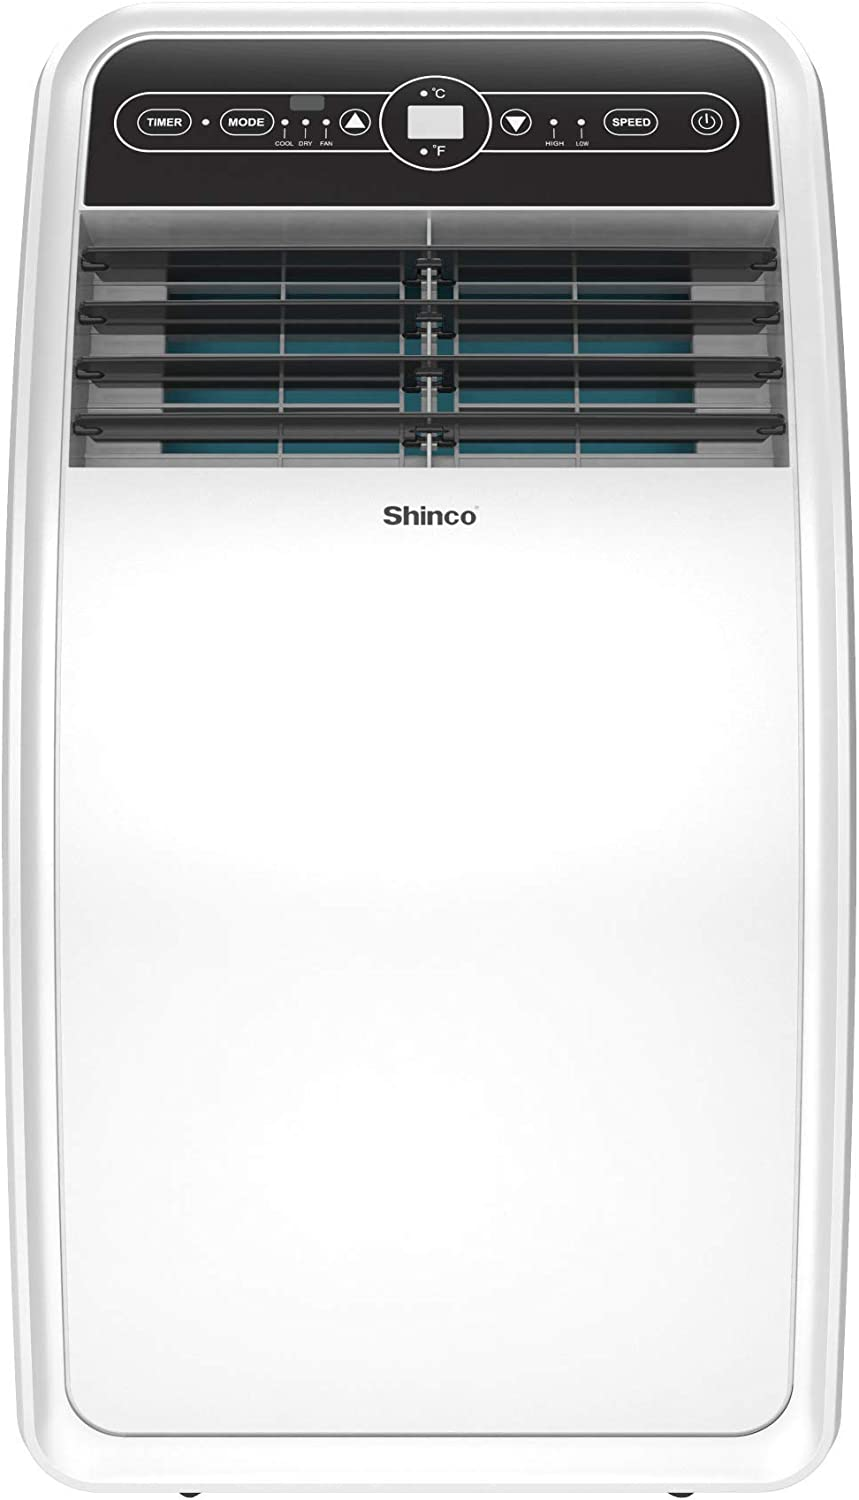 Oklahoma City Mall Shinco 8 000 BTU Portable Air with Dehumid Conditioners Max 61% OFF Built-in